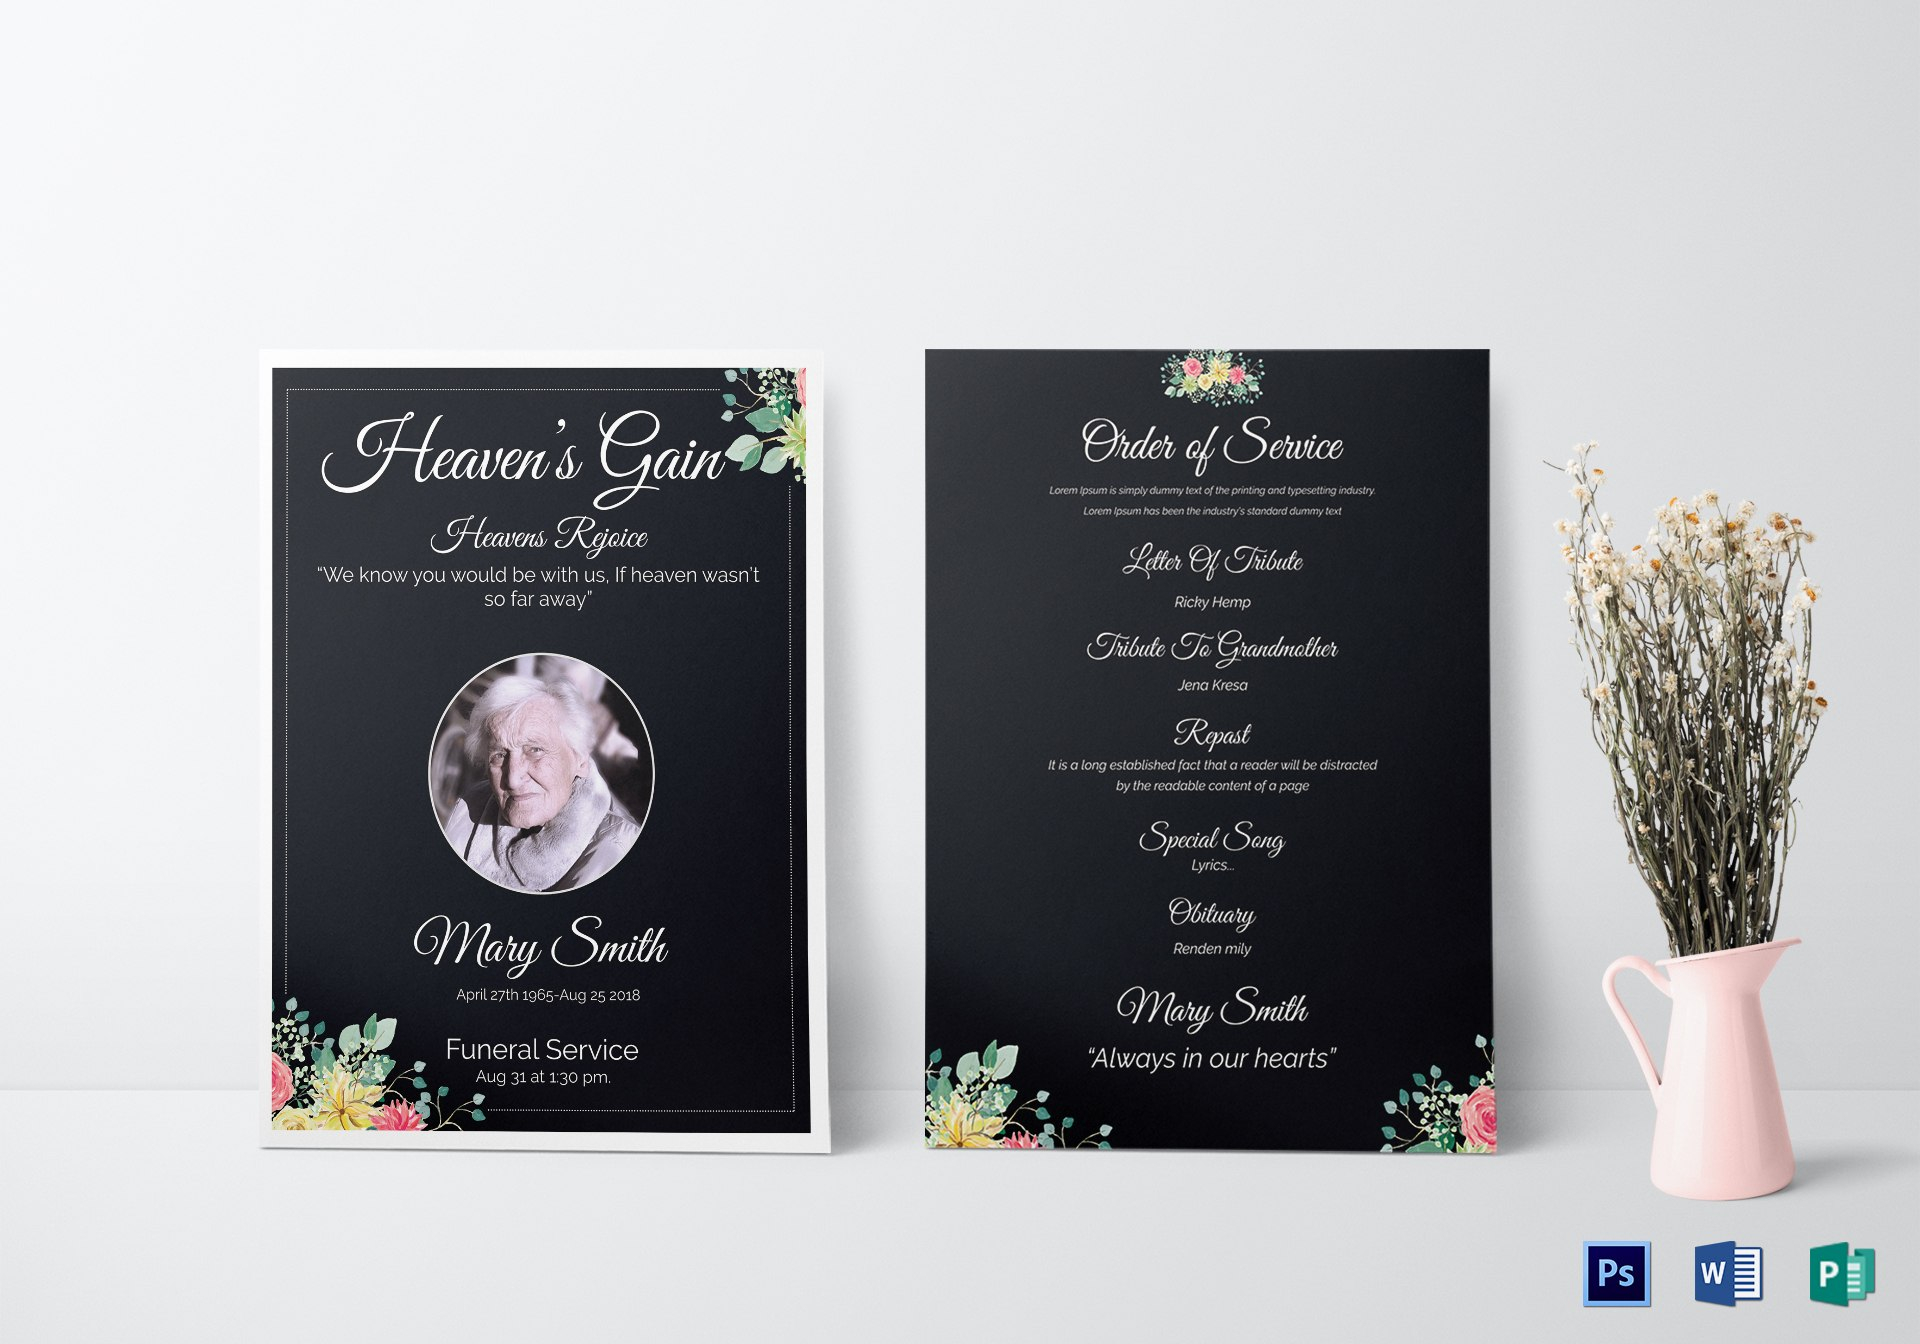 Eulogy Funeral Invitation Card Design Template In Word Psd Publisher Throughout Funeral Invitation Card Template